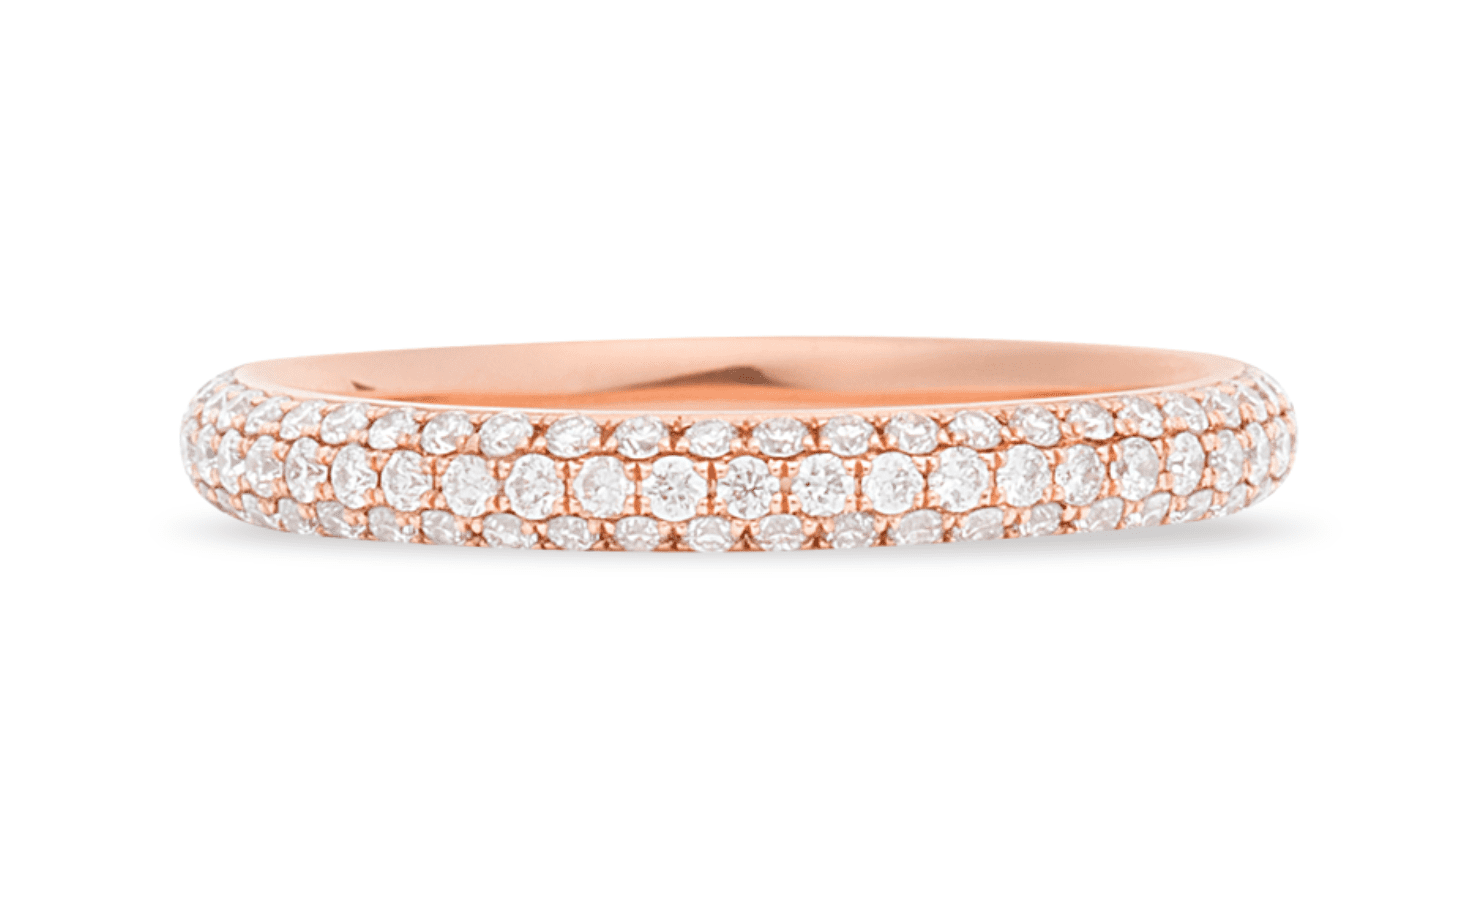 Diamond Eternity Band from King Jewelers